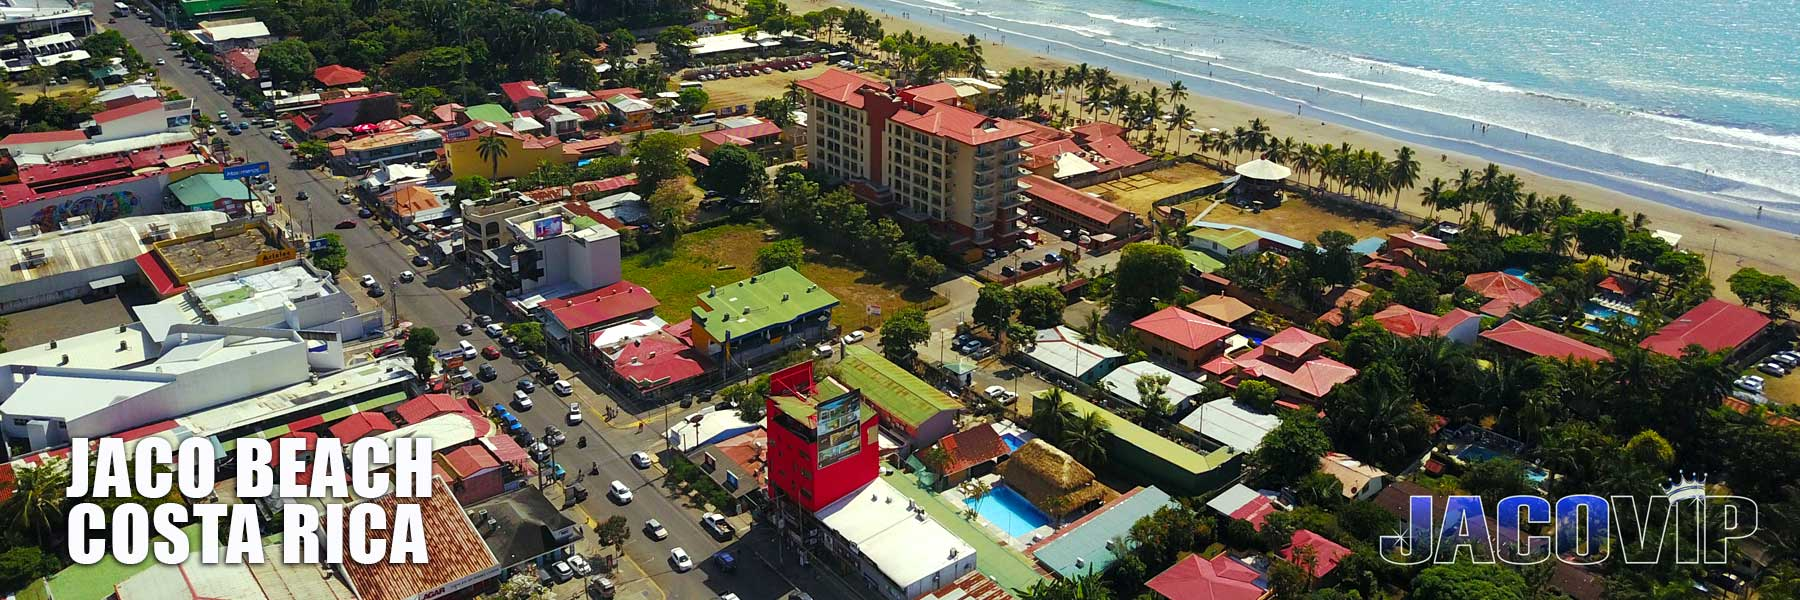 Drobe photo aerial view of Jaco beach and town center